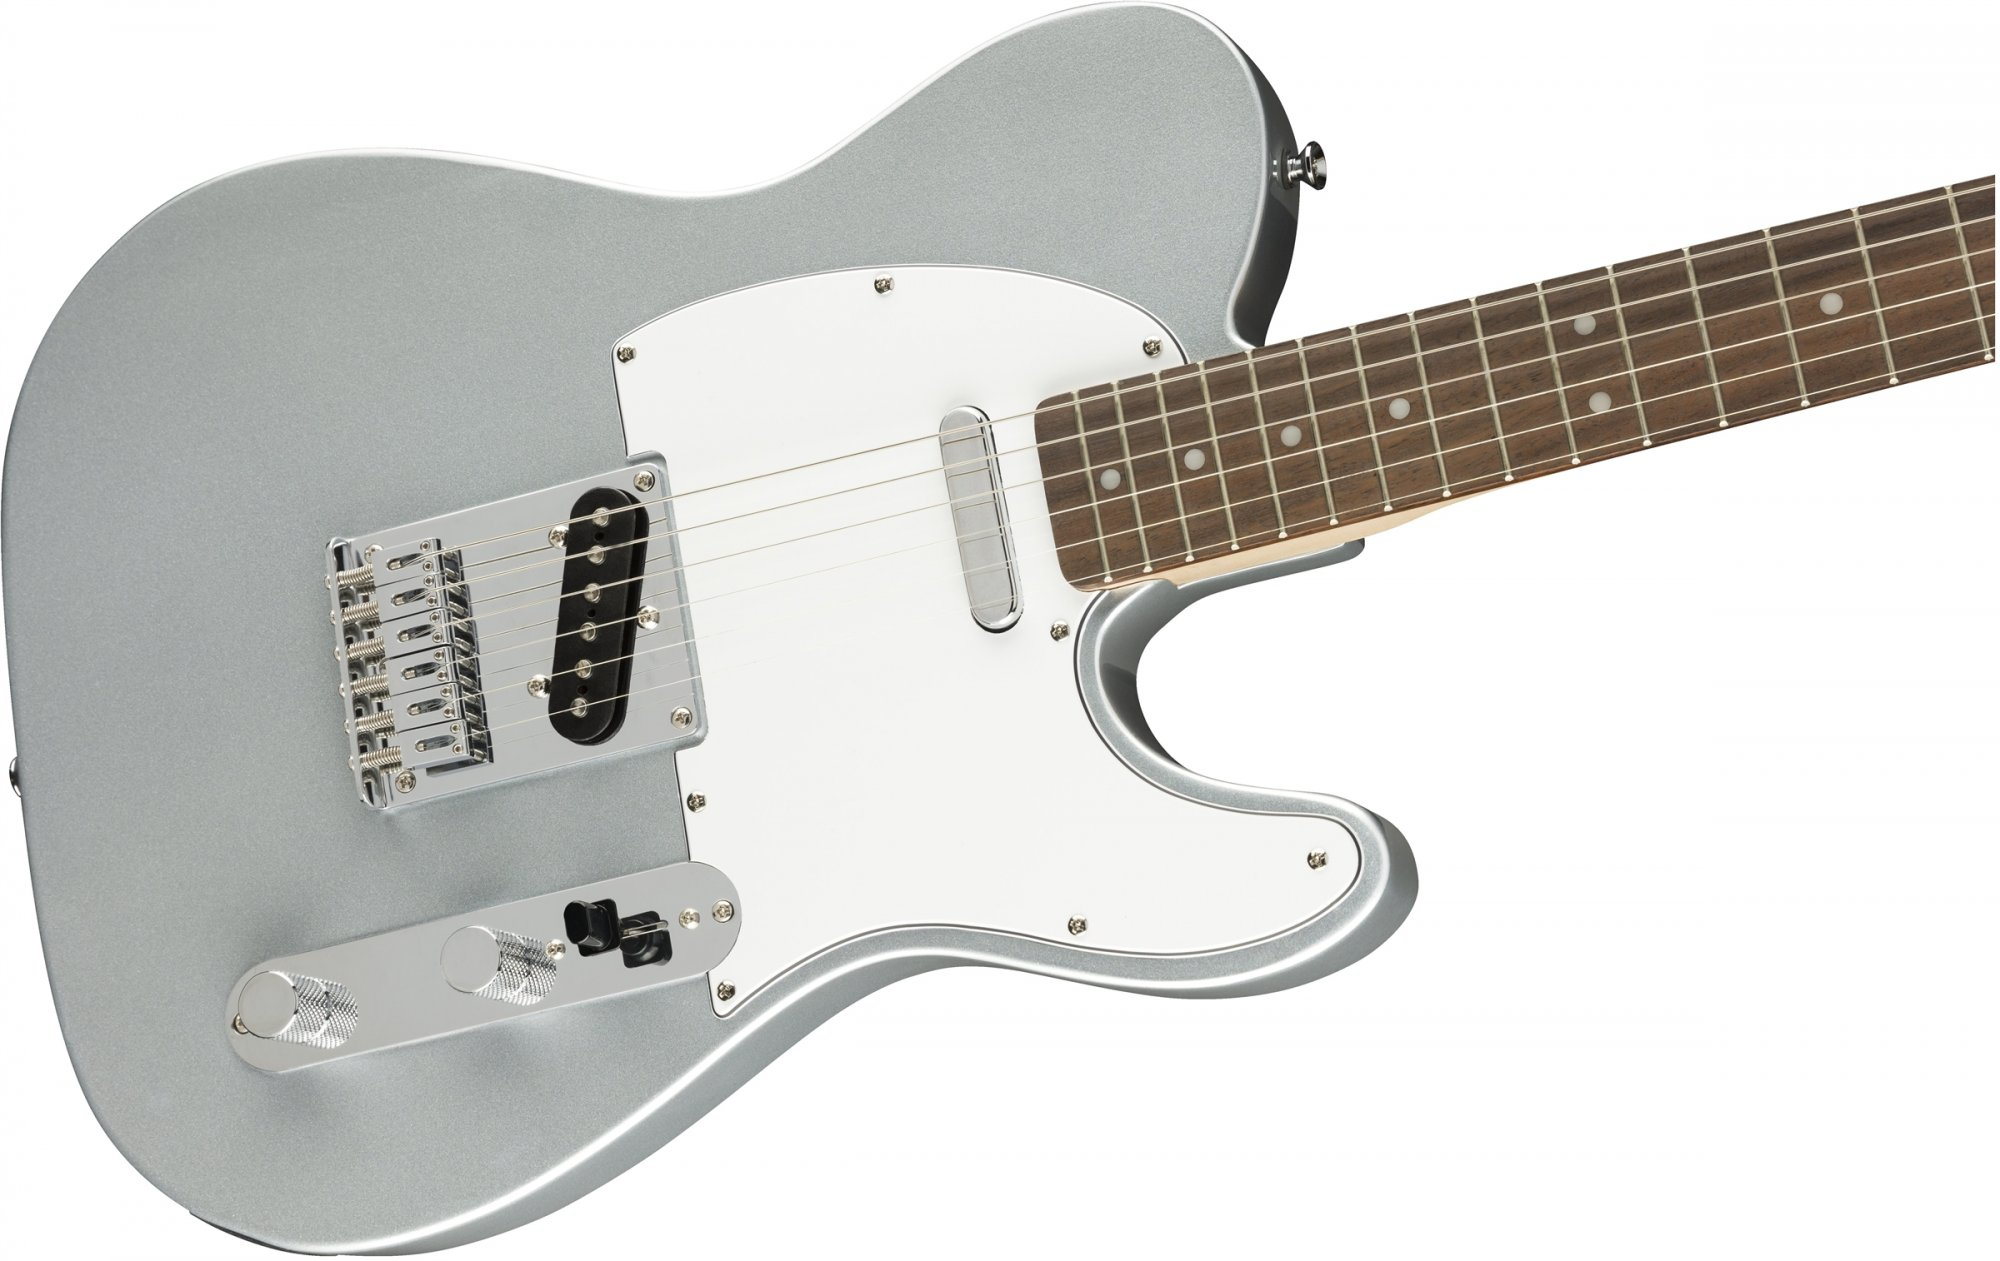 Squier Affinity Series Telecaster, Slick Silver